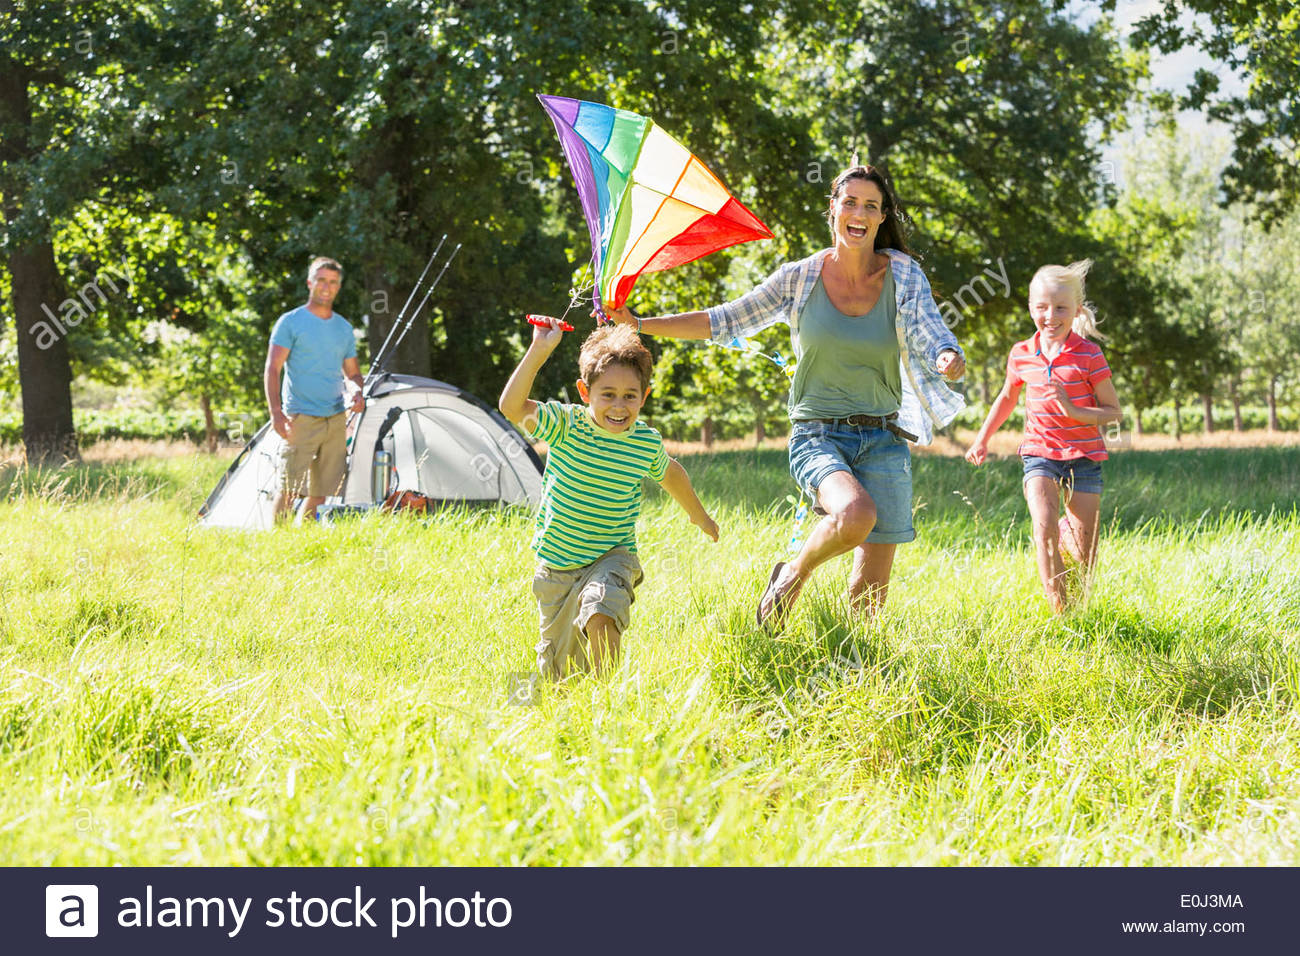 Family Camping Holiday In Countryside Photo Stock